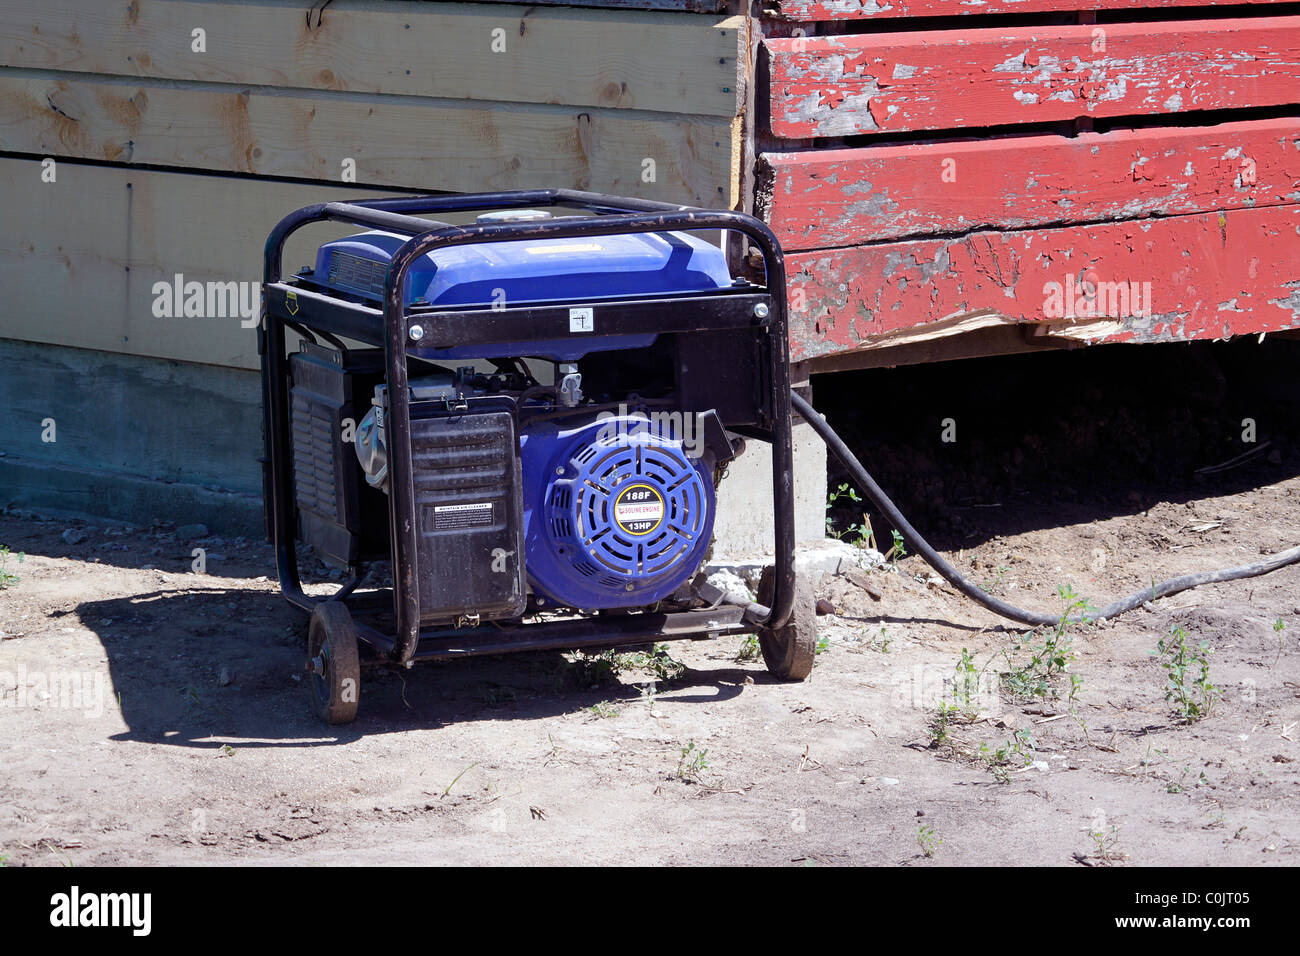 Portable generator being used at remote farm building - Stock Image